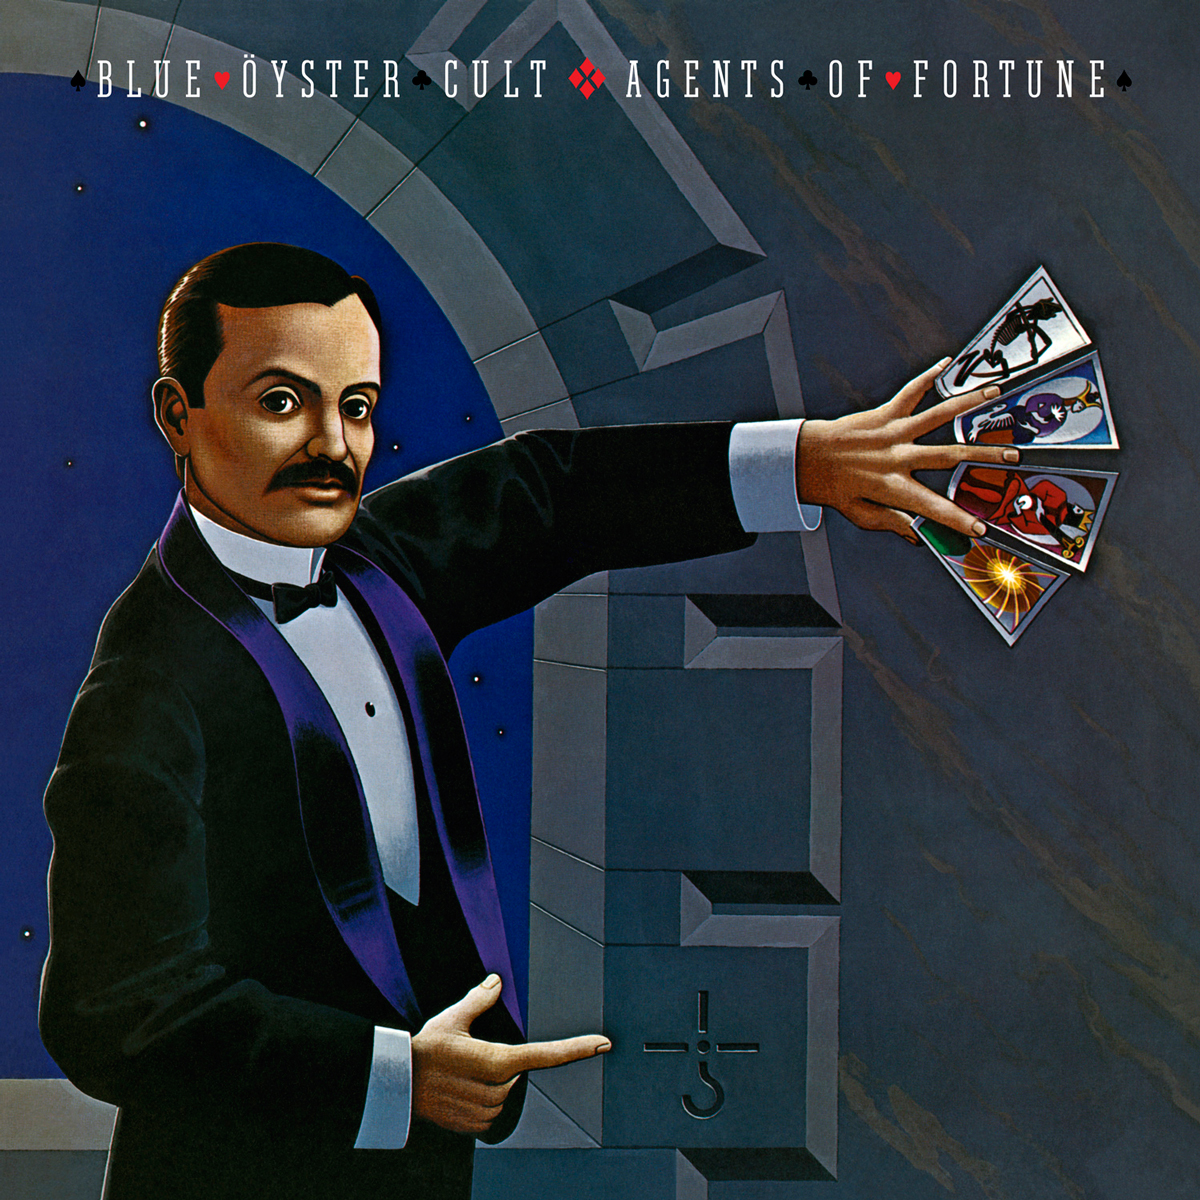 Blue Oyster Cult - Agents Of Fortune 40th Anniversary Edition (180 Gram Audiophile Translucent Blue Vinyl/Limited Edition/Gatefold Cover)